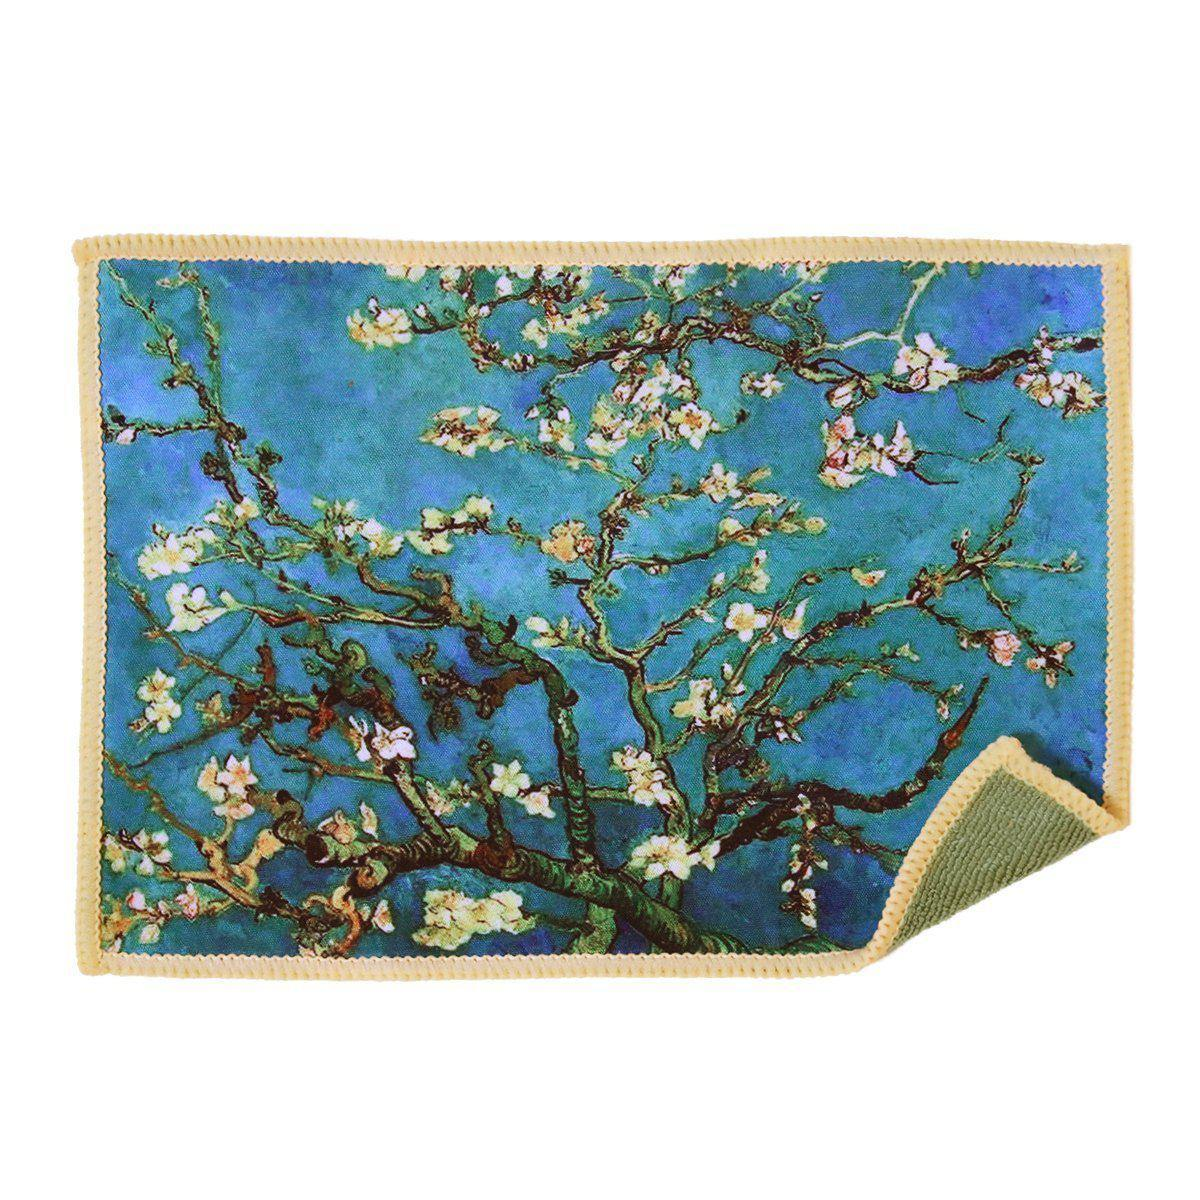 Best iPad cleaning cloth! The Smartie deluxe micro fiber cleaning cloth features beautiful artwork such as van Gogh's Almond Branches in Bloom